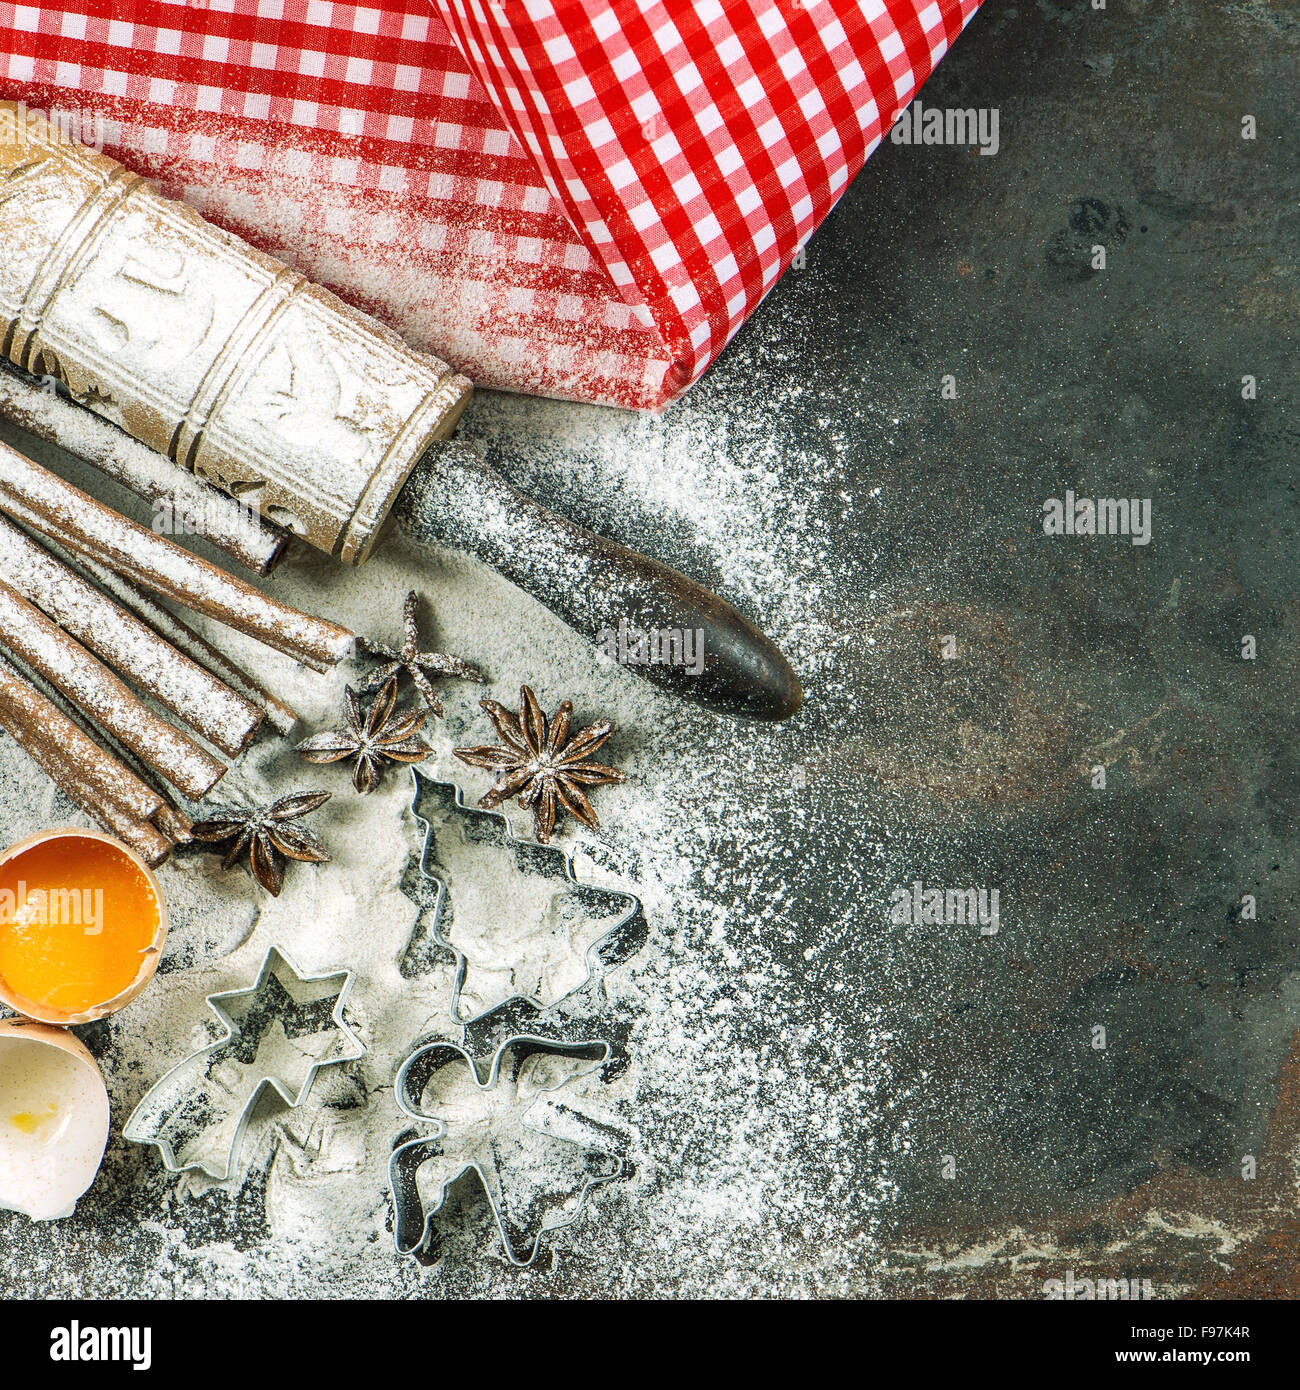 Christmas bakery. Baking ingredients and tolls. Vintage style toned picture - Stock Image